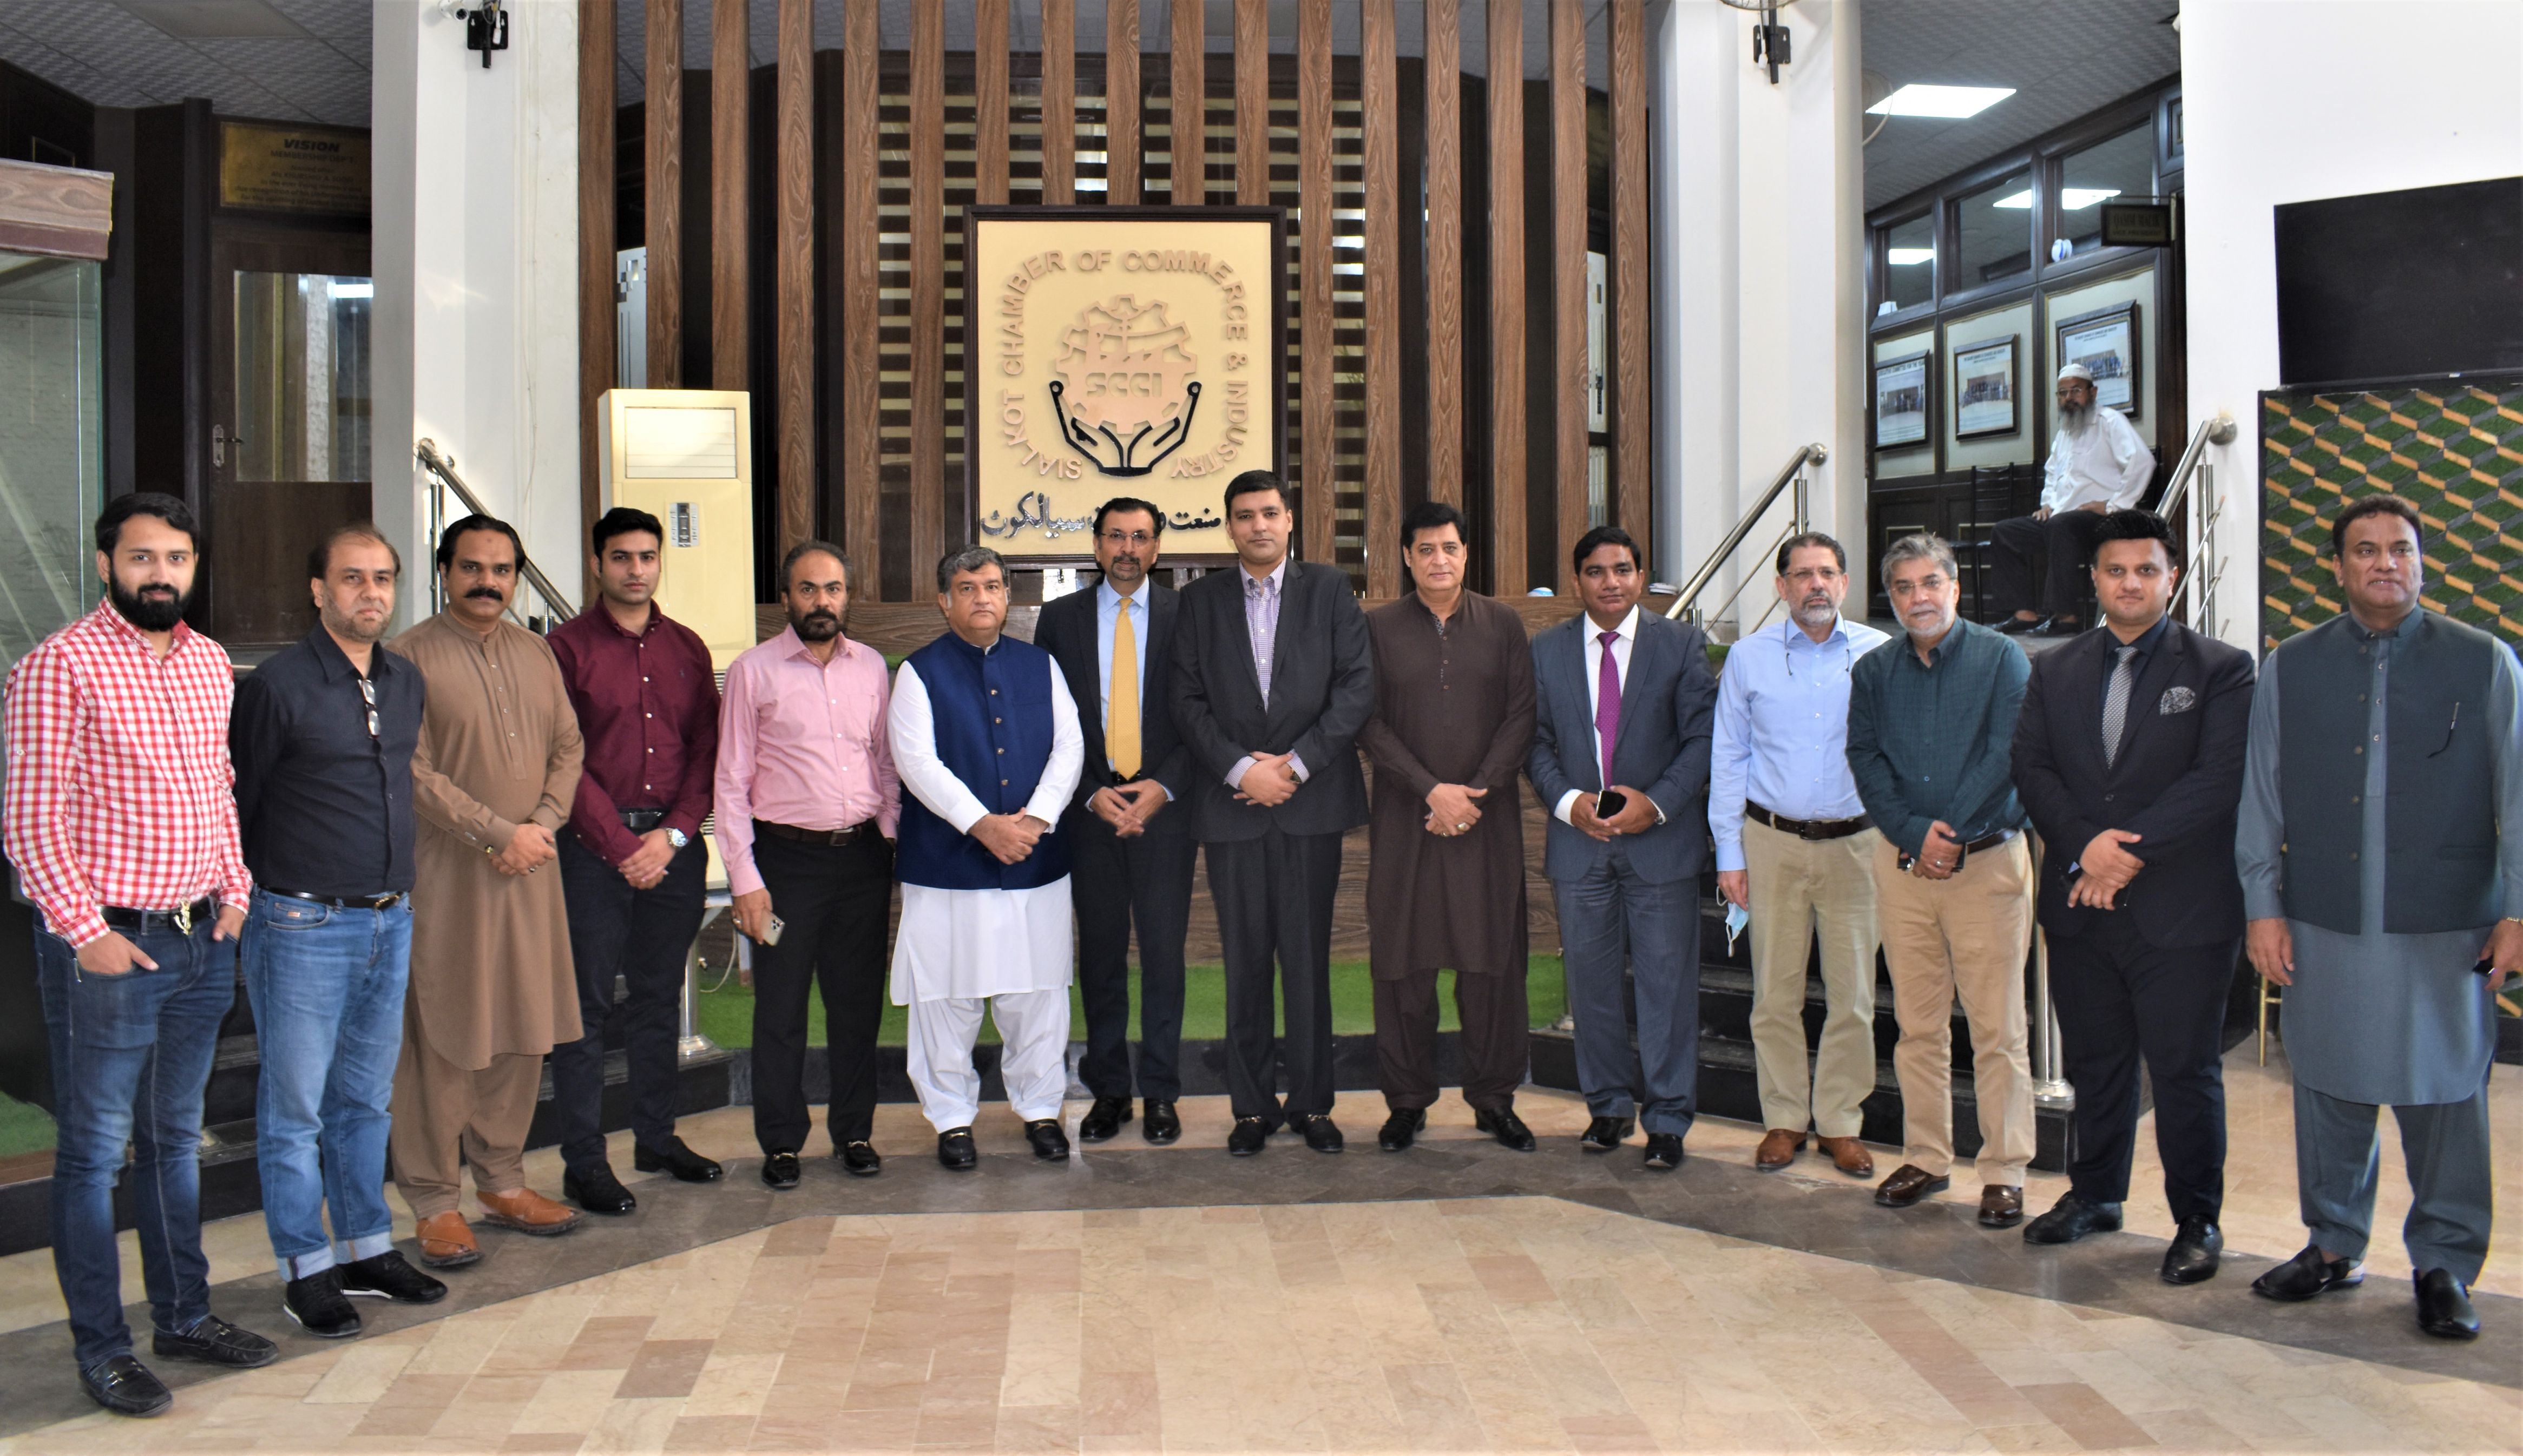 On October 21, 2021, Mr. Farrukh H. Khan, CEO/ Managing Director, Pakistan Stock Exchange Limited (PSX) visited The Sialkot Chamber of Commerce & Industry to Interact with the Business Community of Sialkot.  President and Senior Vice President, The Sialkot Chamber of Commerce & Industry welcomed the Honorable Guest. President Chamber appreciated the role of Pakistan Stock Exchange in facilitating the SMEs Businesses to raise capital to fund their growth and expansion plans through Growth Enterprise Market (GEM) Board.  Mr. Farrukh H. Khan encouraged the business community of Sialkot to list their Business/ Company in Stock Exchange to achieve the highest standard of Efficiency and Profitability by raising Capital for Company's Growth. He gave a presentation to brief the audience about Listing at PSX and benefits of IPO.